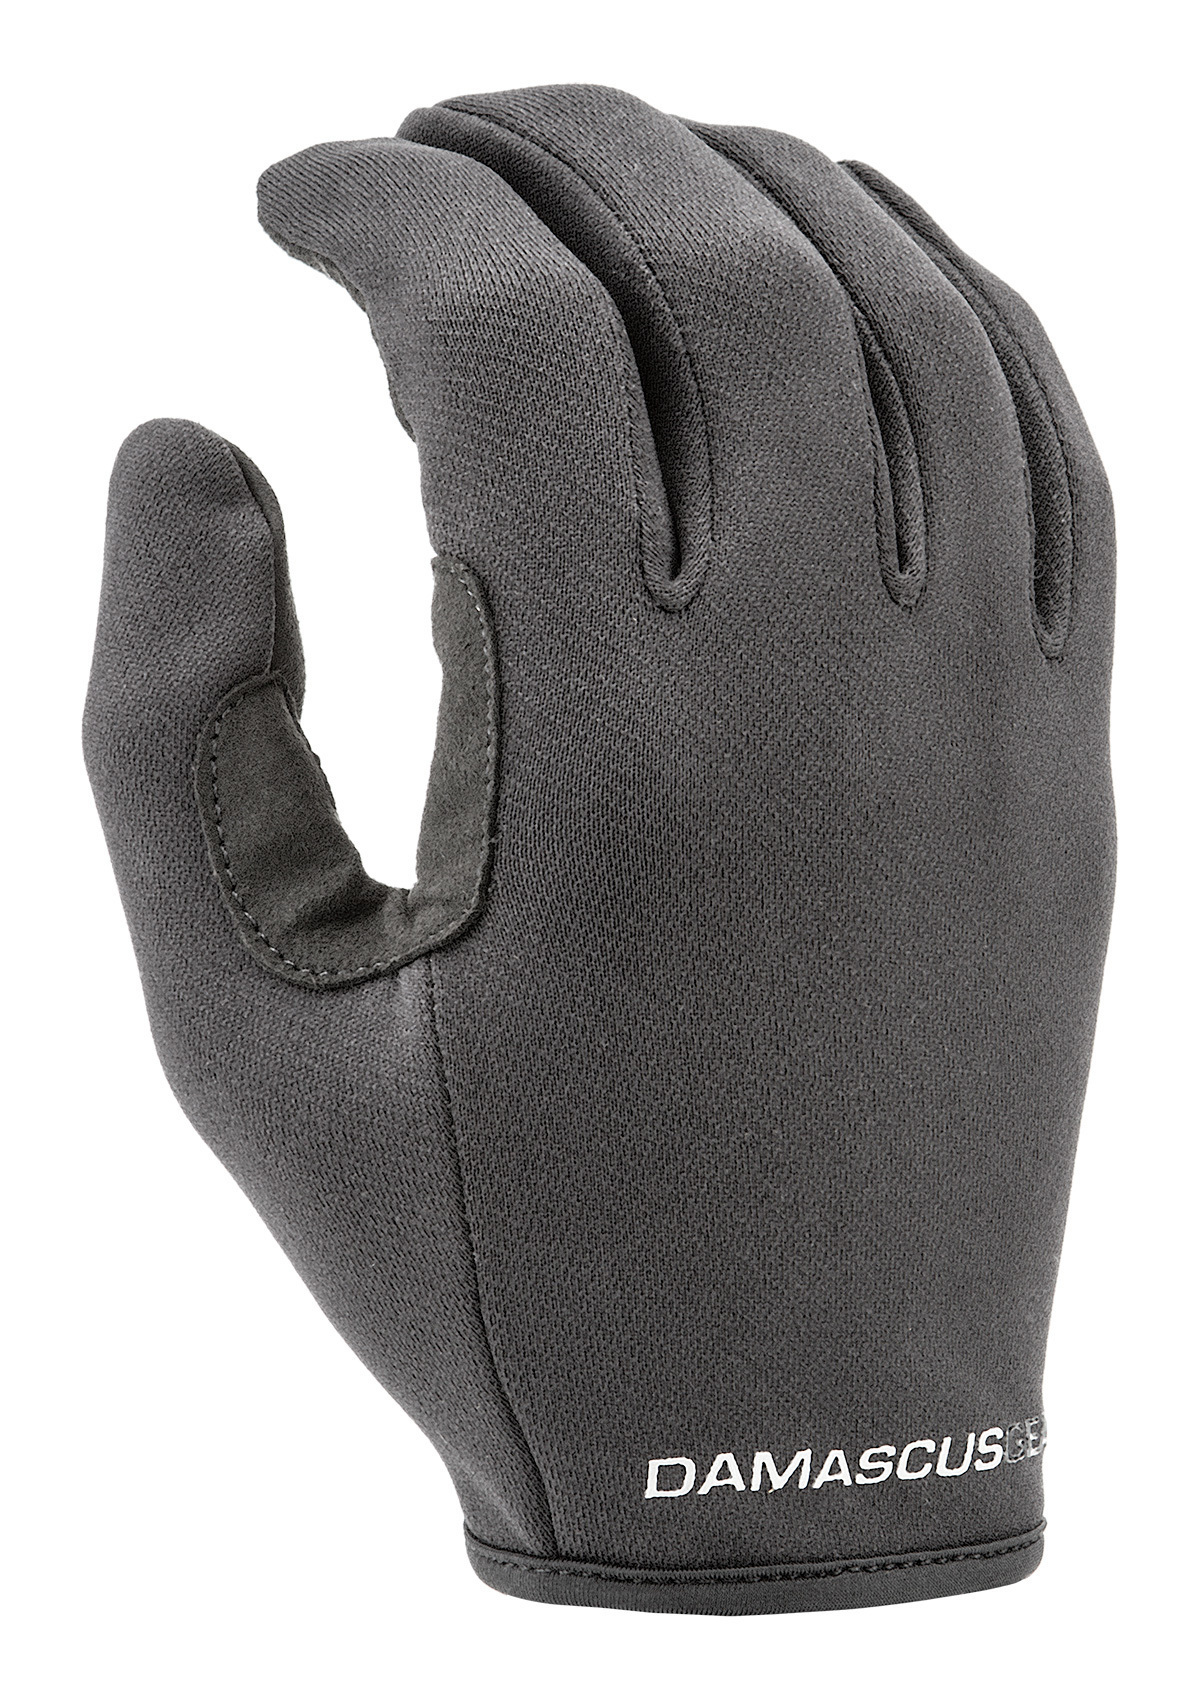 CP2-A - Unlined Shooting/Duty Gloves